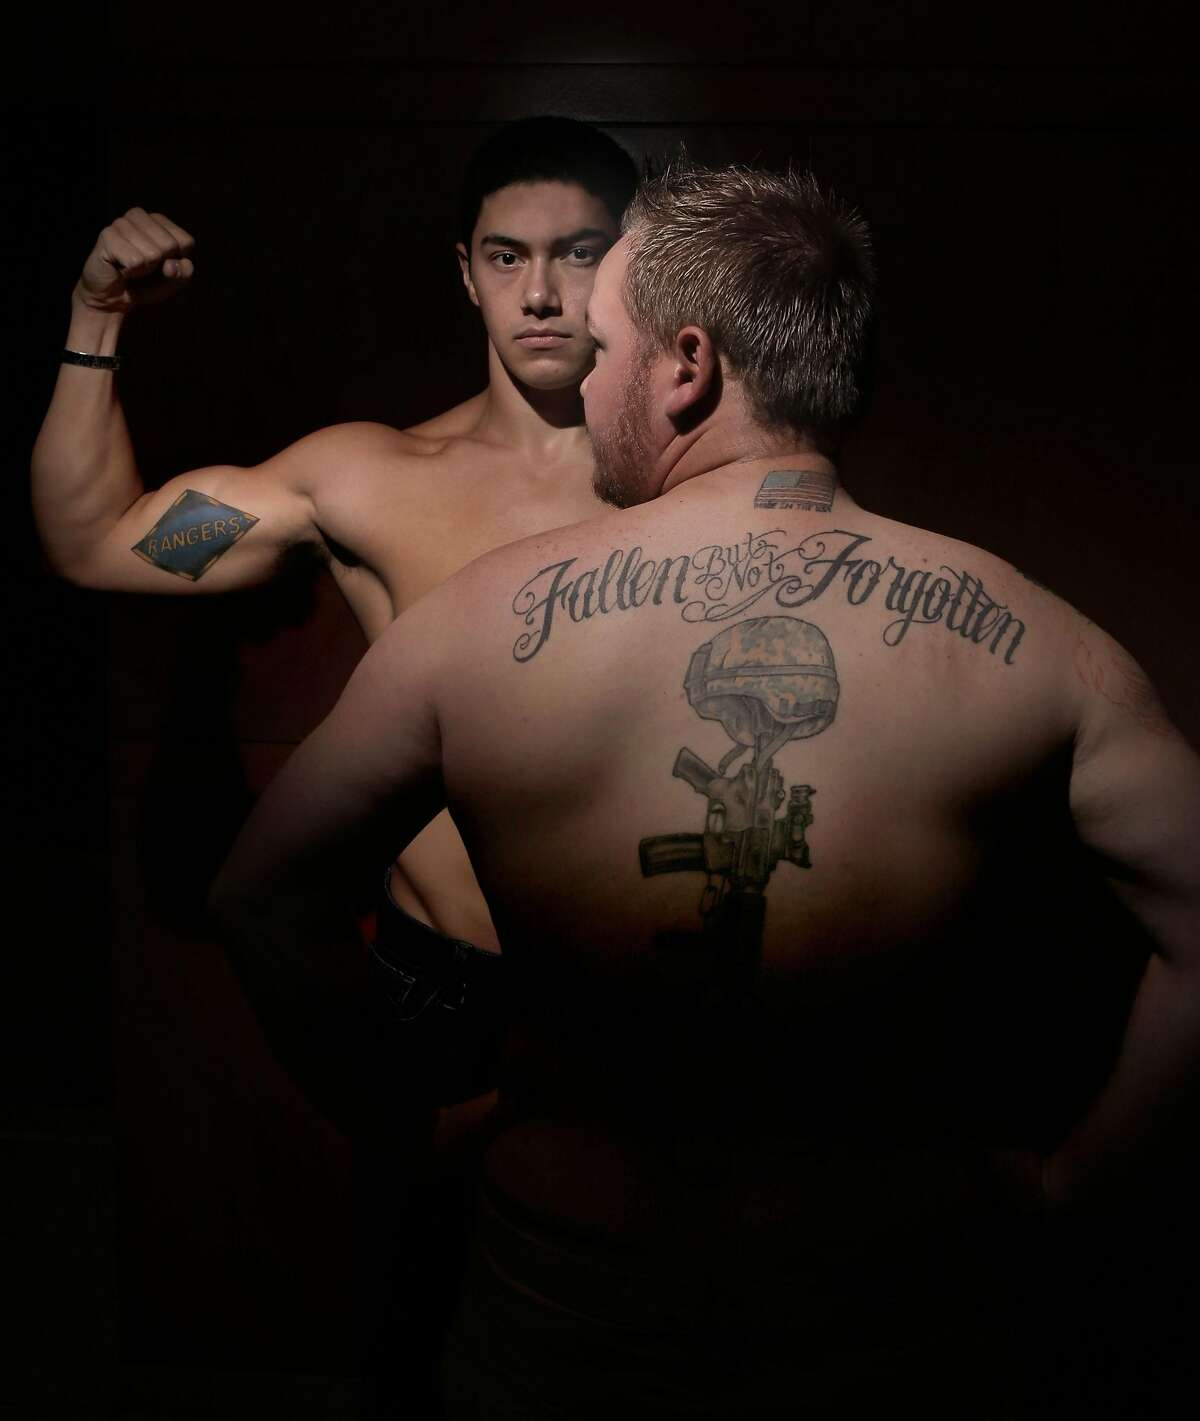 William Glazier, (left) of Gilroy, who served with the 1st Ranger Battalion of the US Army and Jonathan Snyder, of Des Moine, Iowa, who served with the US Army 4th Engineer Battalion display their tattoos, as seen on Friday Nov. 7, 2014 in Oakland, Calif. Veterans of the Iraq and Afghanistan wars come together to display their tattoos for an exhibition called War Ink.